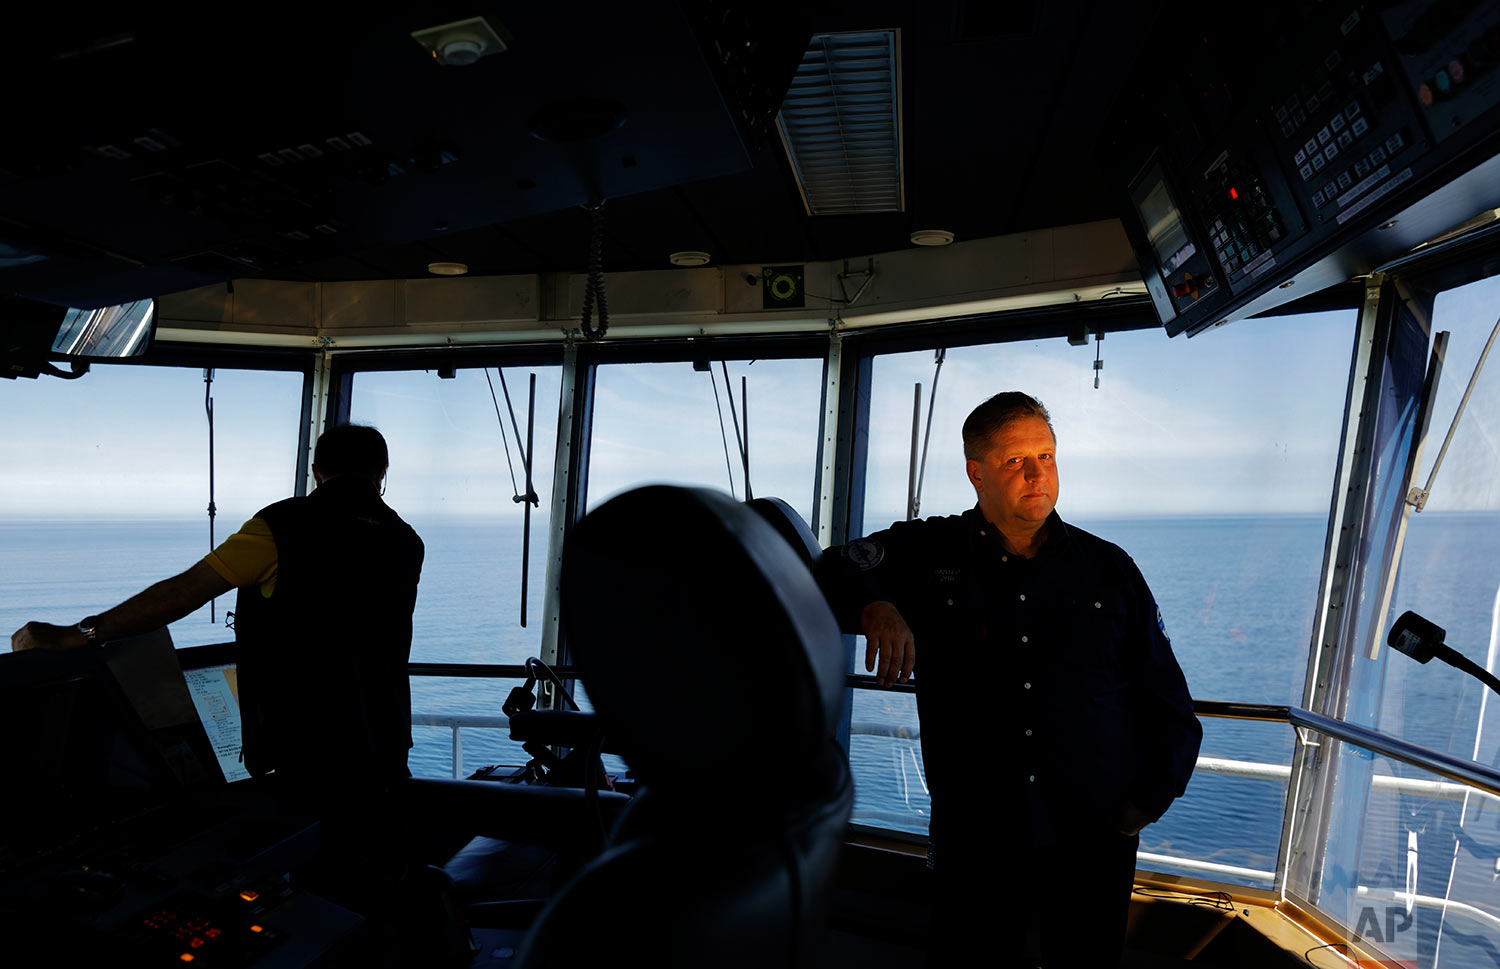 """Master Mariner Jyri Viljanen, 56, captain of the Finnish icebreaker MSV Nordica stands for a portrait in the ship's bridge as it sails north in the Bering Sea toward the Arctic, Thursday, July 13, 2017.  Viljanen has been going to sea for 39 years and this will be his first transit through the Arctic's Northwest Passage. """"It's once a lifetime,"""" said Viljanen. """"The biggest risk is these are very remote areas so if anything happens it's very difficult to get any help or rescue or anything."""" (AP Photo/David Goldman)"""